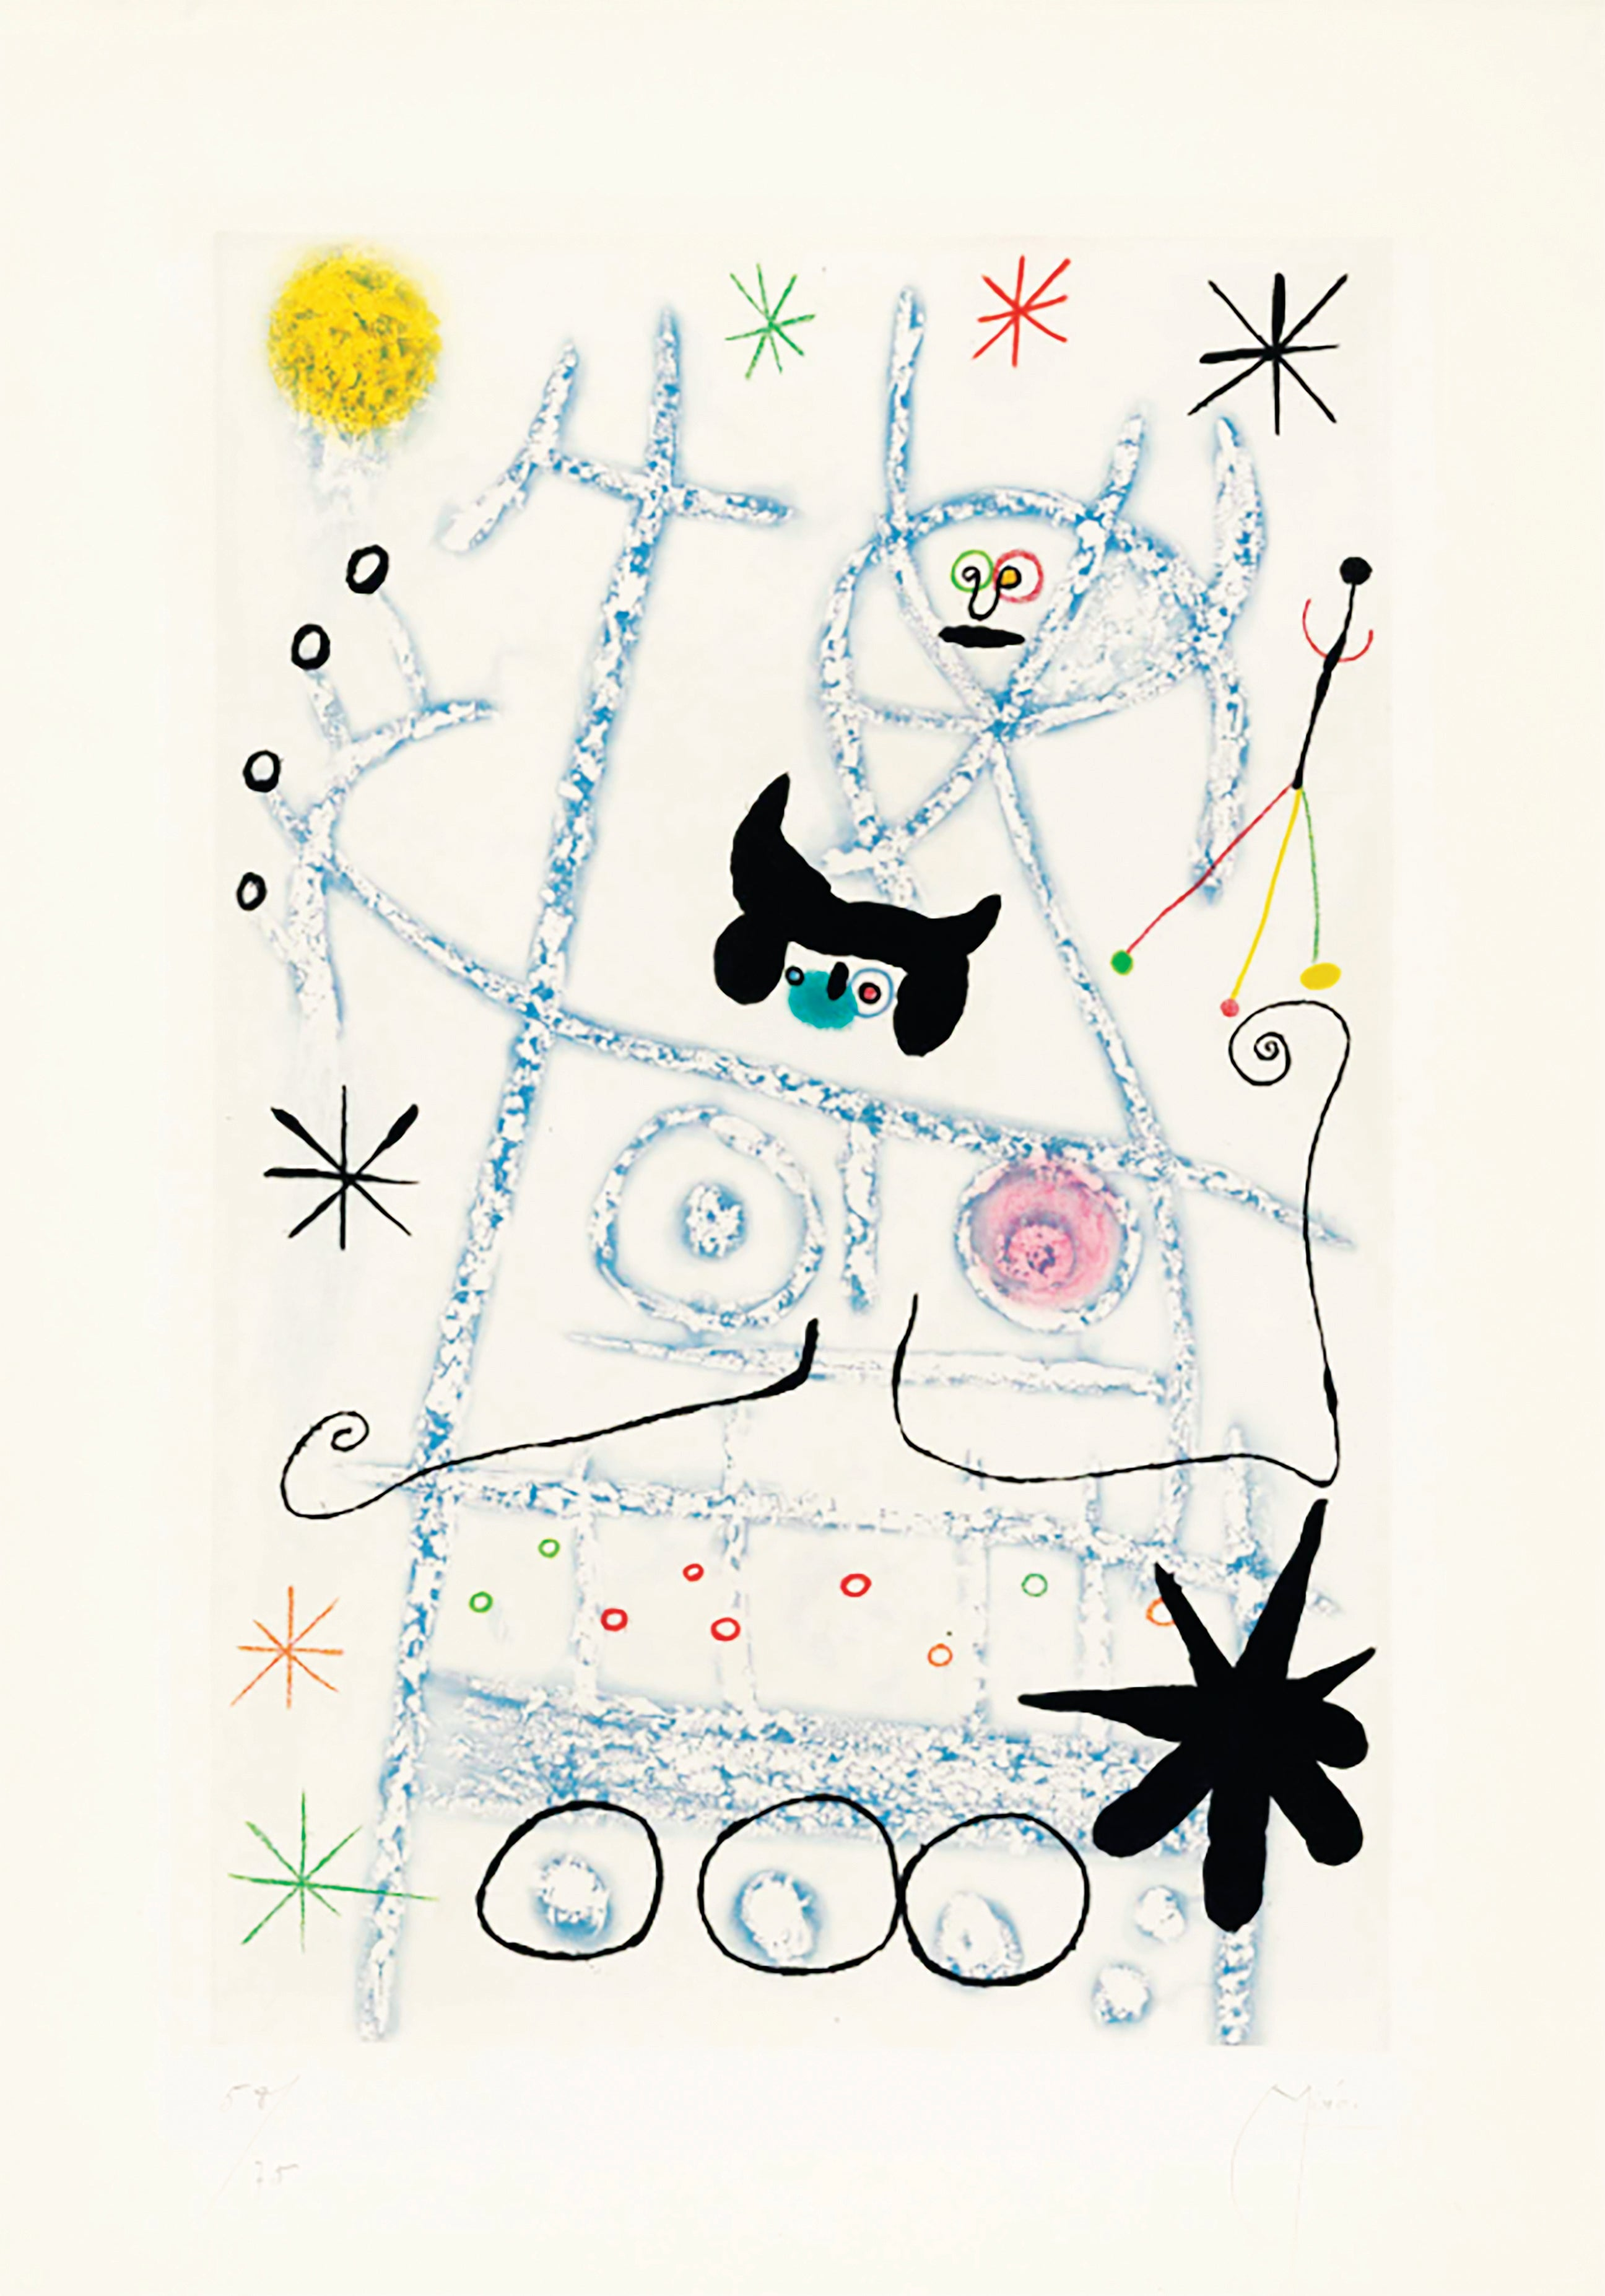 Joan Miro, Les Forestiers (bleu), aquatint printed in colours, 1958, signed